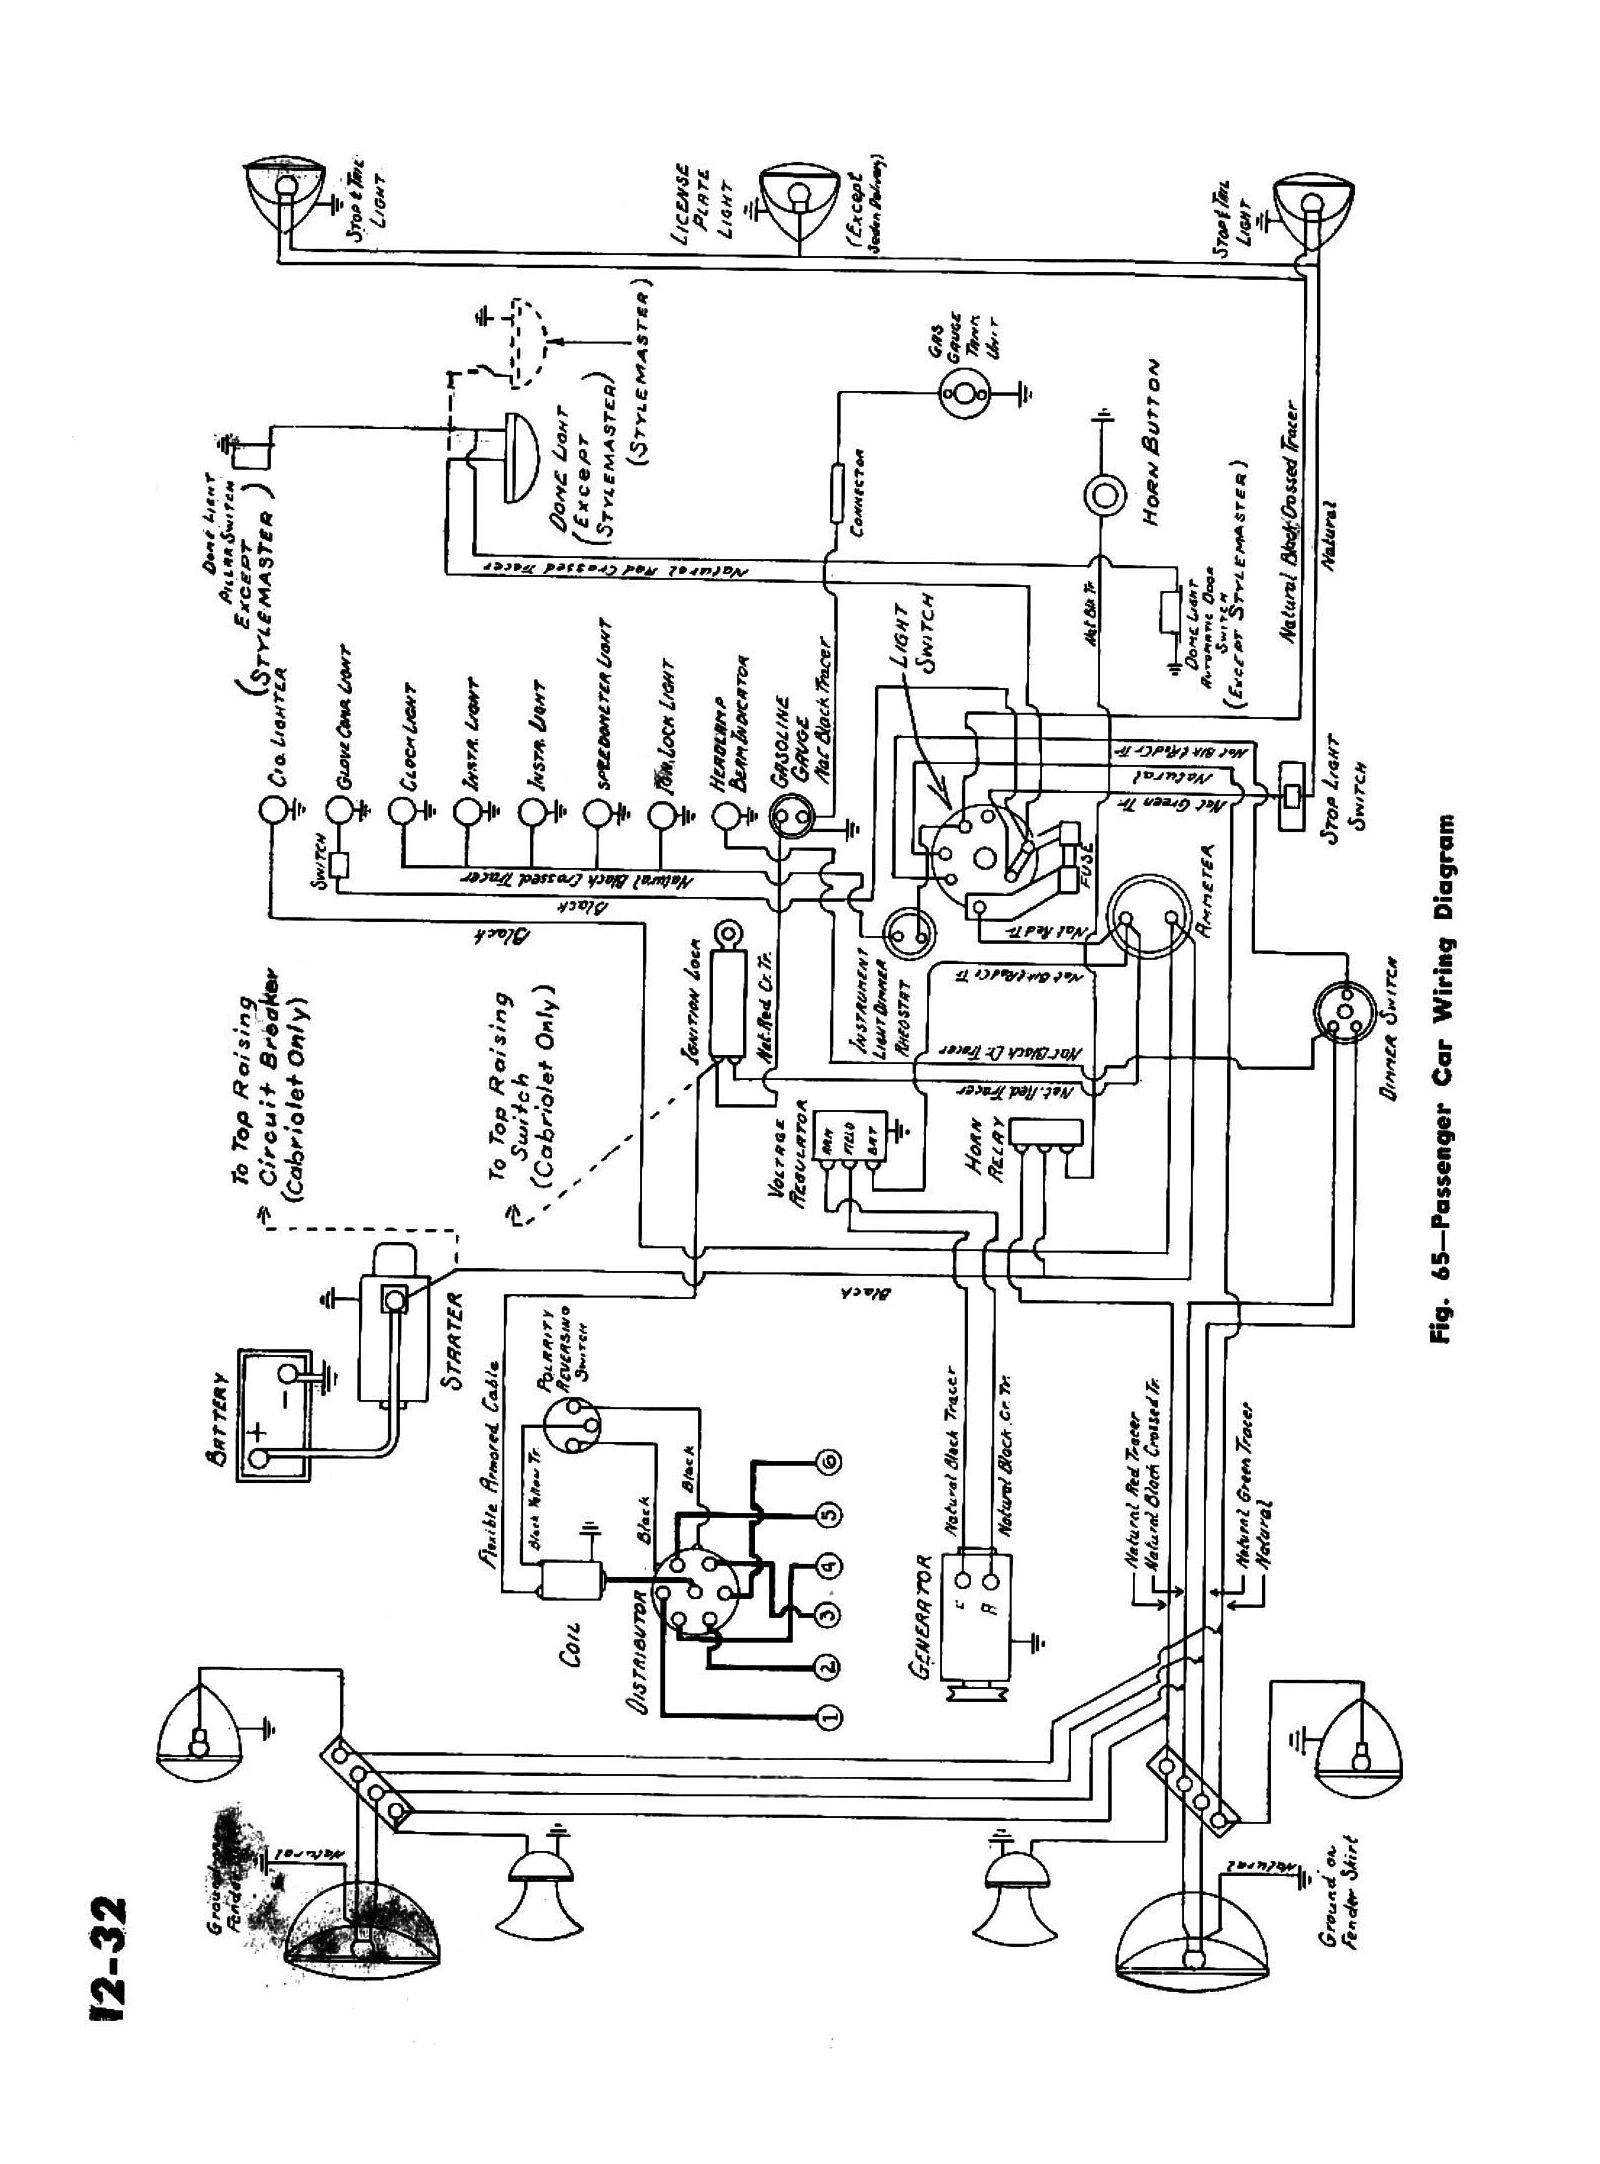 1941 international truck wiring